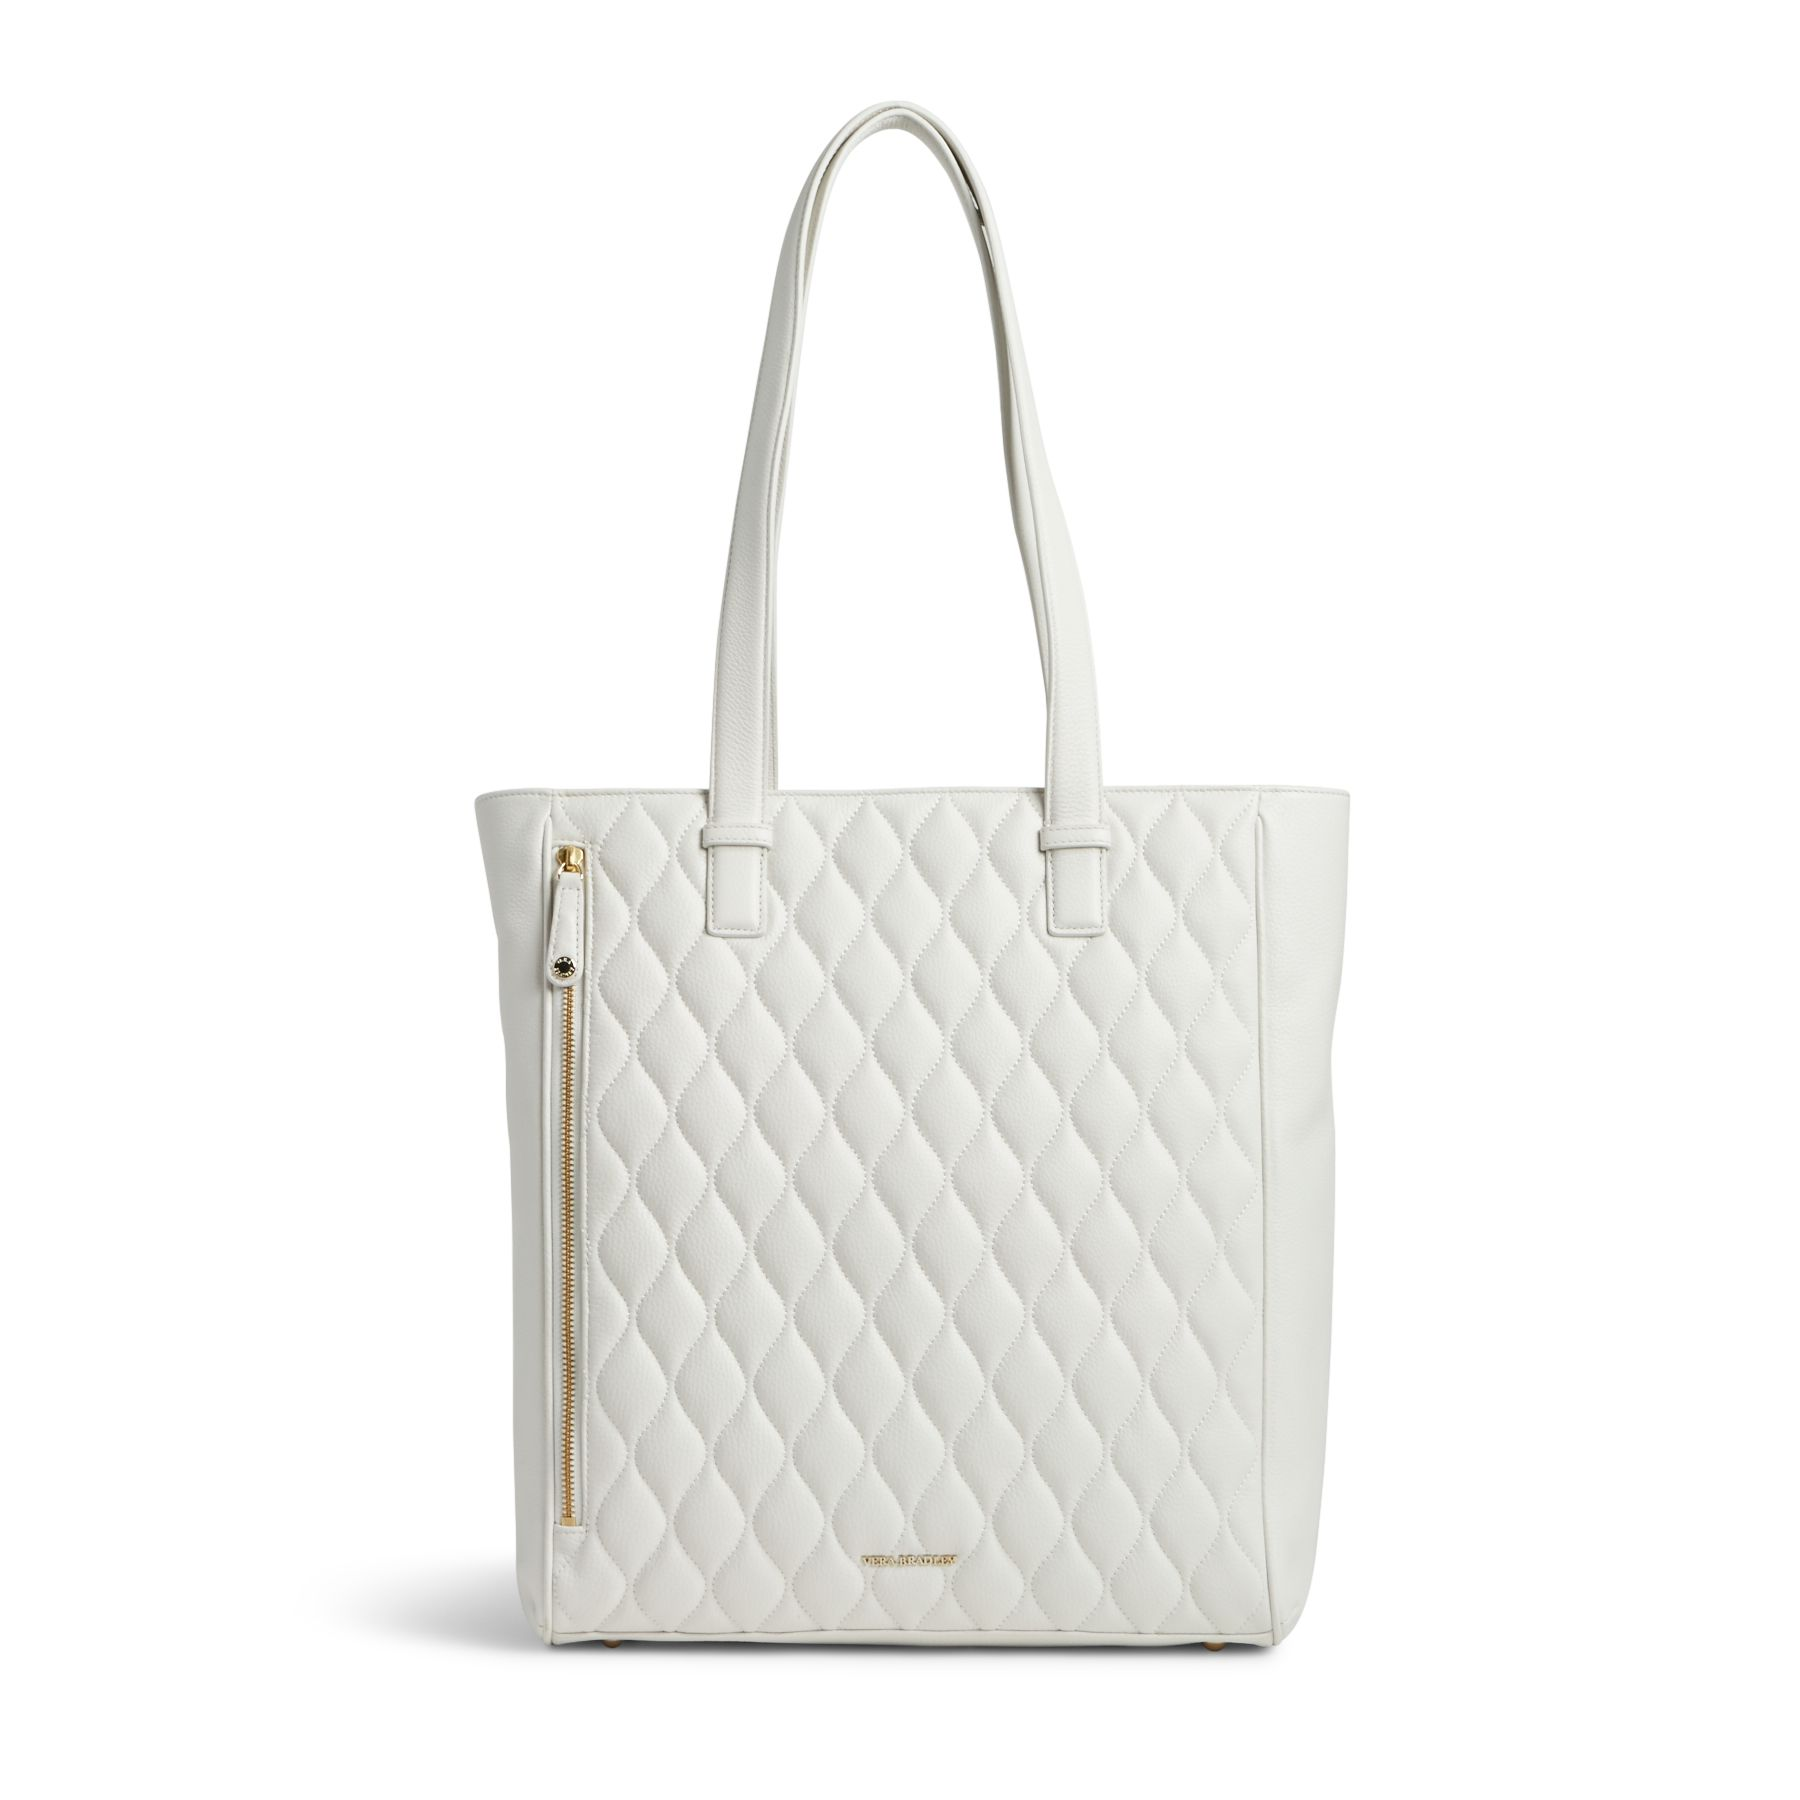 Vera Bradley Leather Quilted Leah Tote Bag Ebay